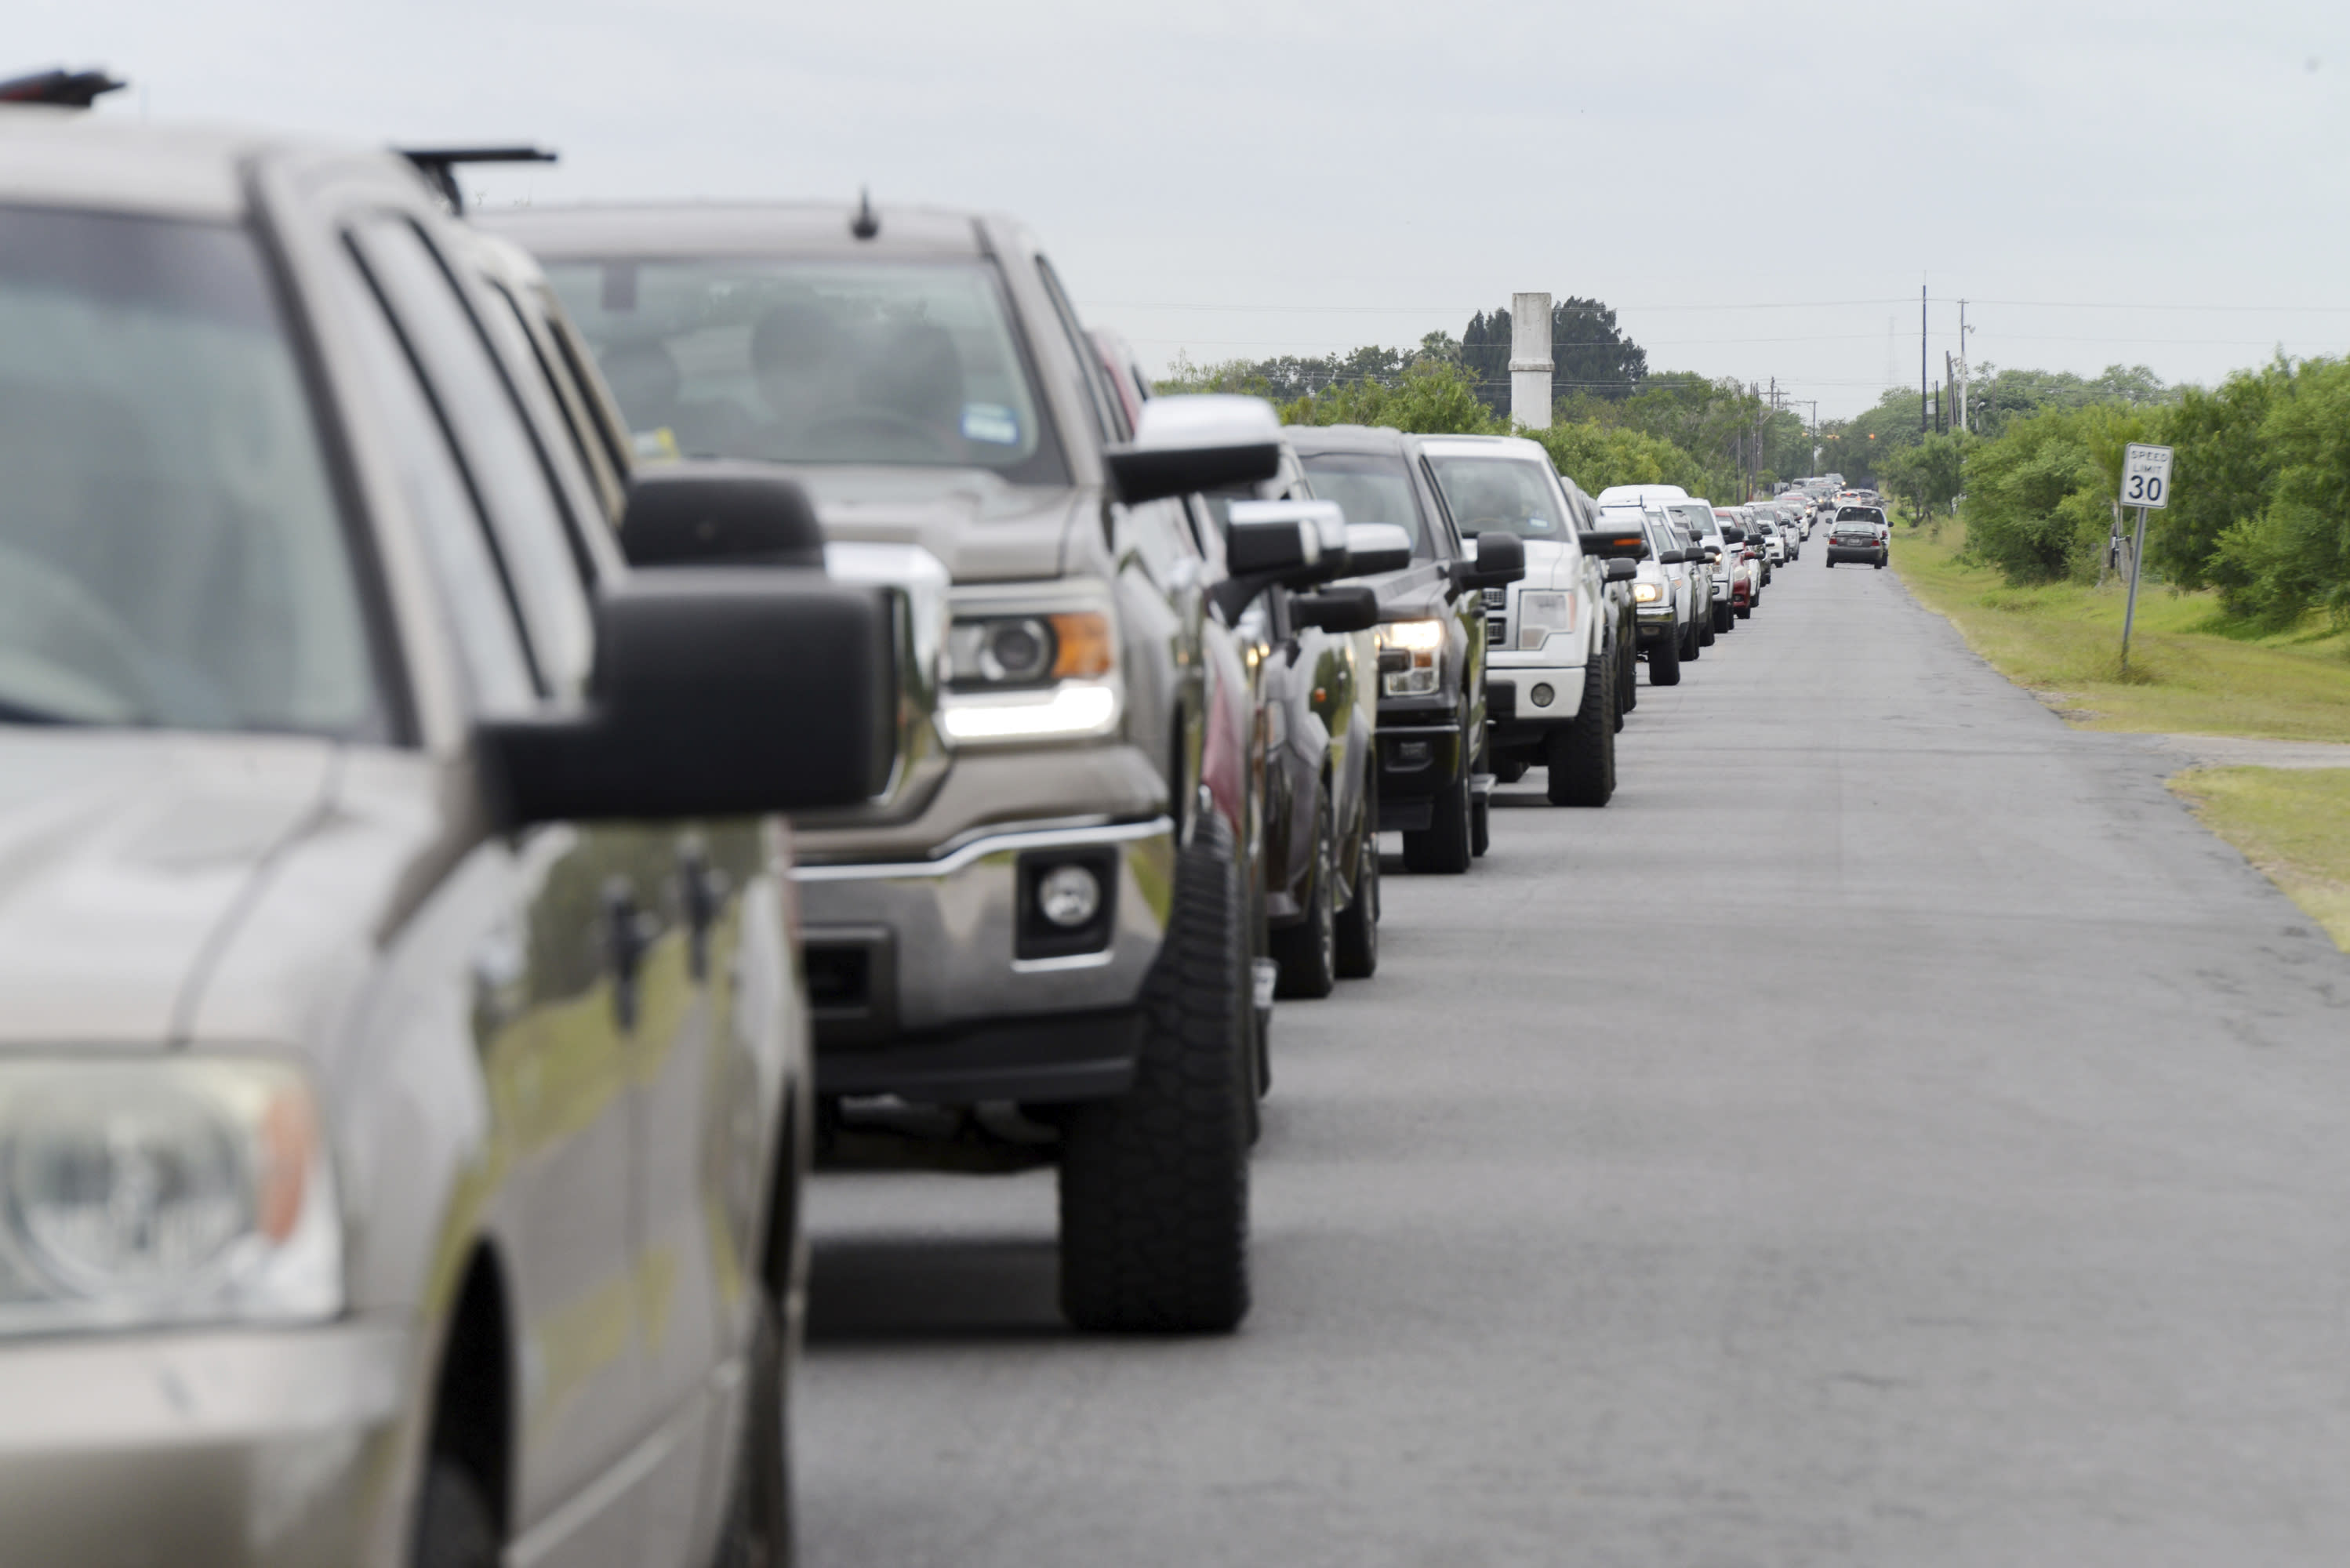 Hundreds of vehicles form a line as Brownsville, Texas residents wait for sandbags Saturday, July 25, 2020, at Anastacio Guillen Precinct 1 Cameron County Public Works Building along Browne Avenue as South Texas prepare for torrential rainfall due to Hurricane Hanna. (Miguel Roberts/The Brownsville Herald via AP)